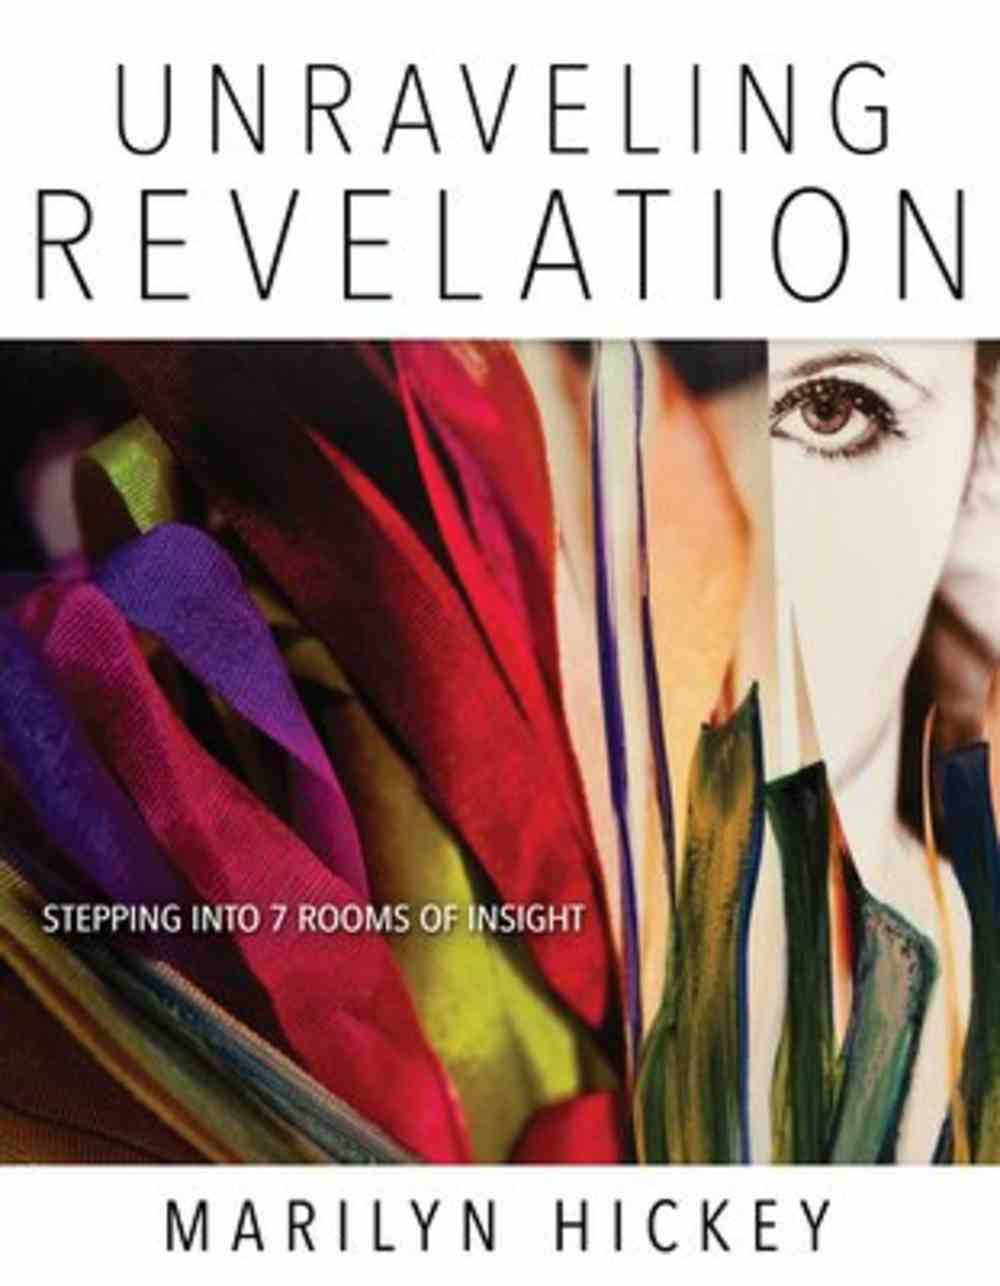 Unraveling Revelation: Stepping Into Seven Rooms of Insight Paperback